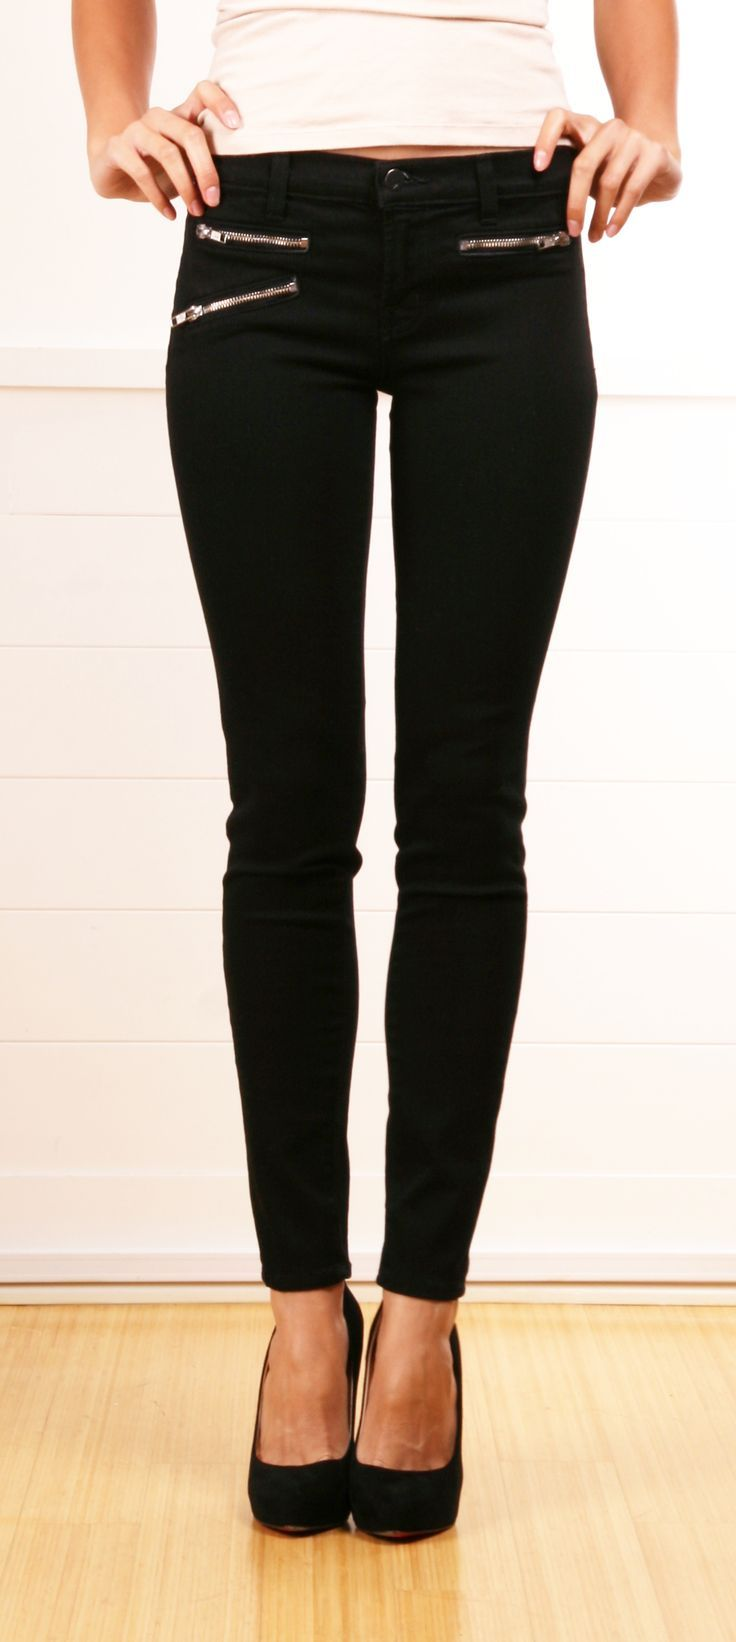 Black skinny pants with zipper detailing <3 So edgy and yet classy